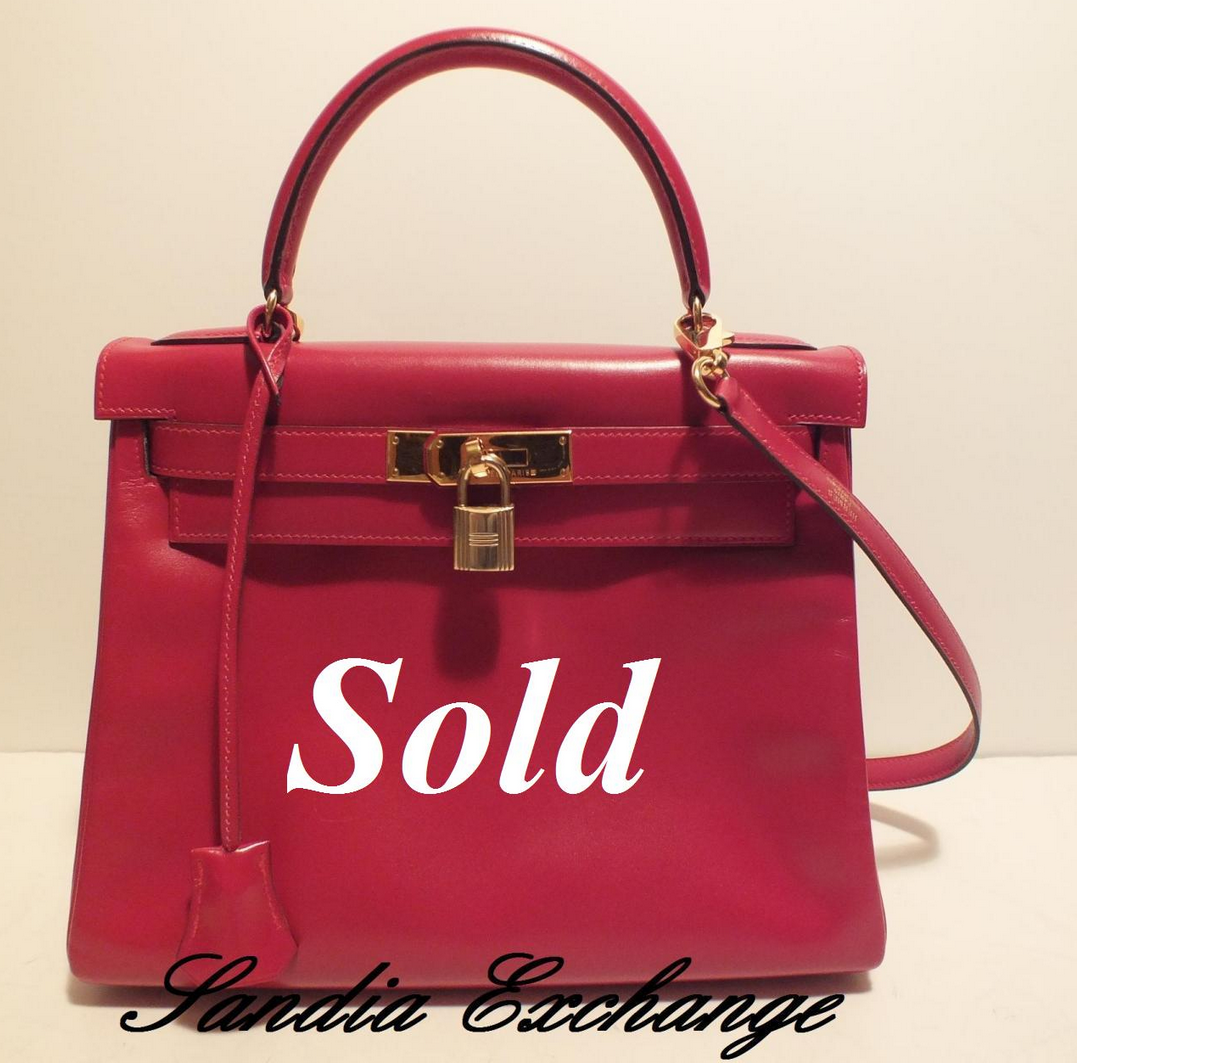 herme birkin bags - authentic-hermes-kelly-28-cm-rouge-vif-box-calf-gold-hardware-veryrare-7.jpg